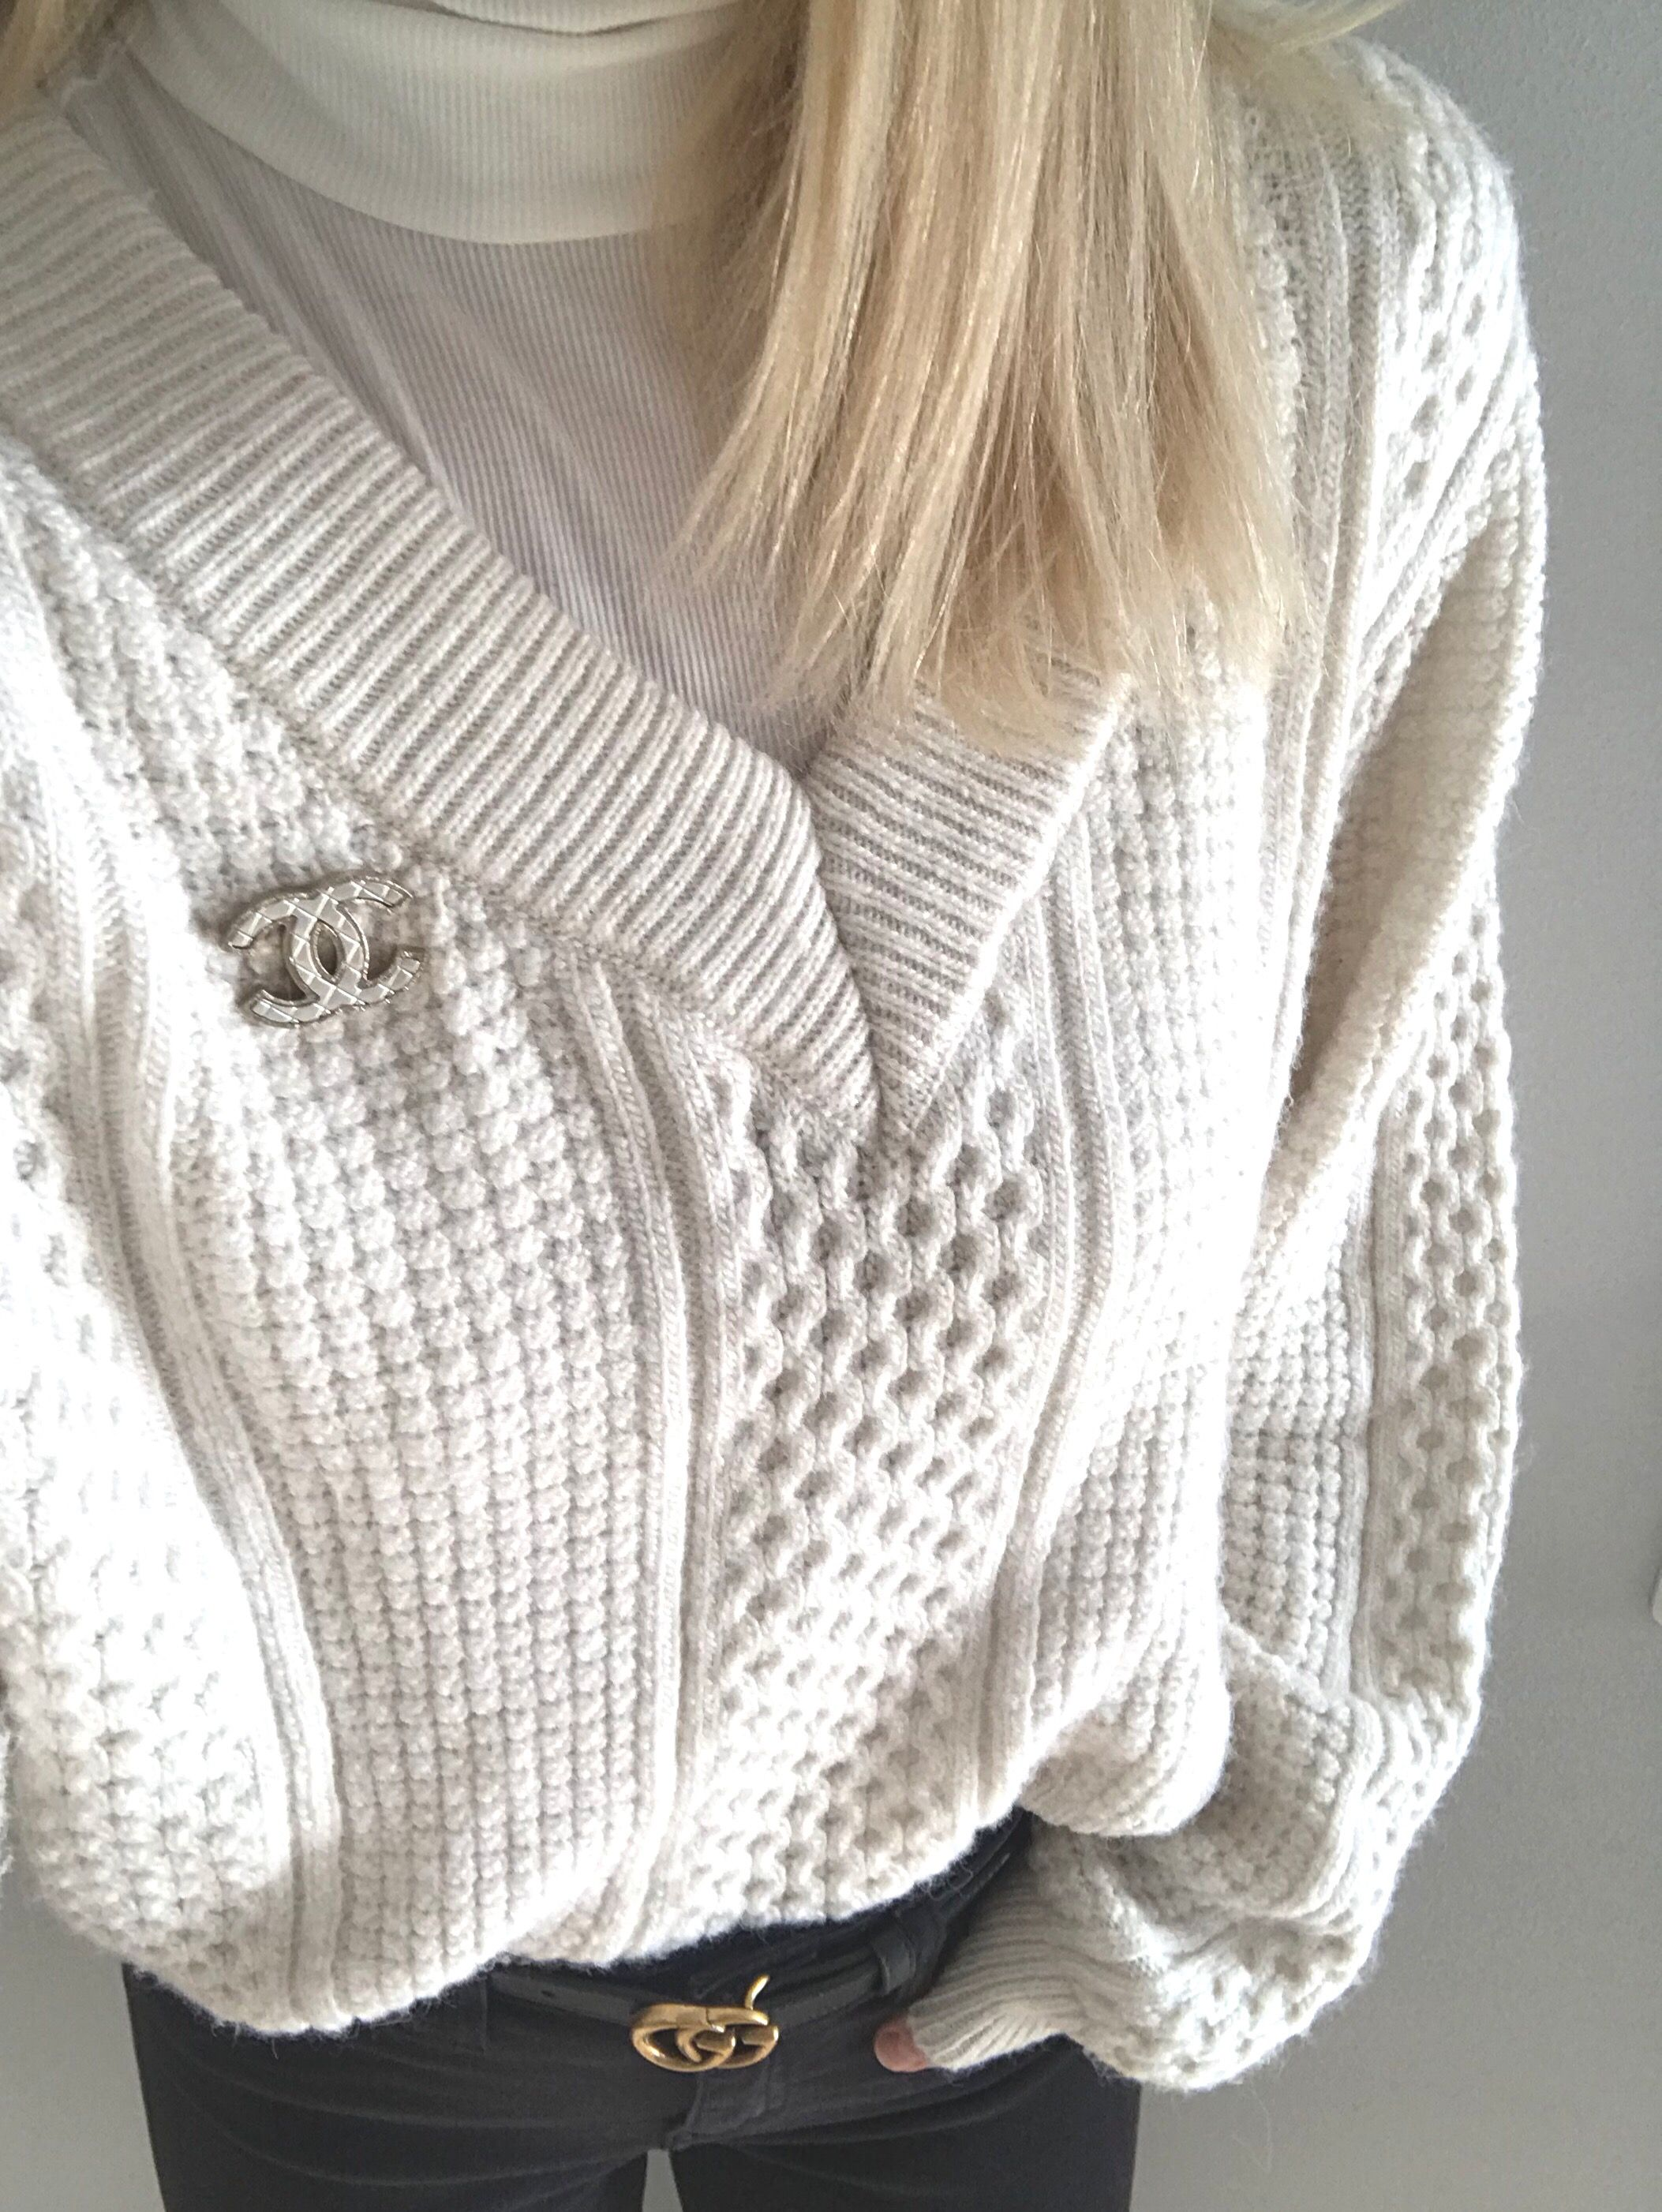 f01cb064225 Chanel brooch and gucci marmont belt with a white knit sweater ...